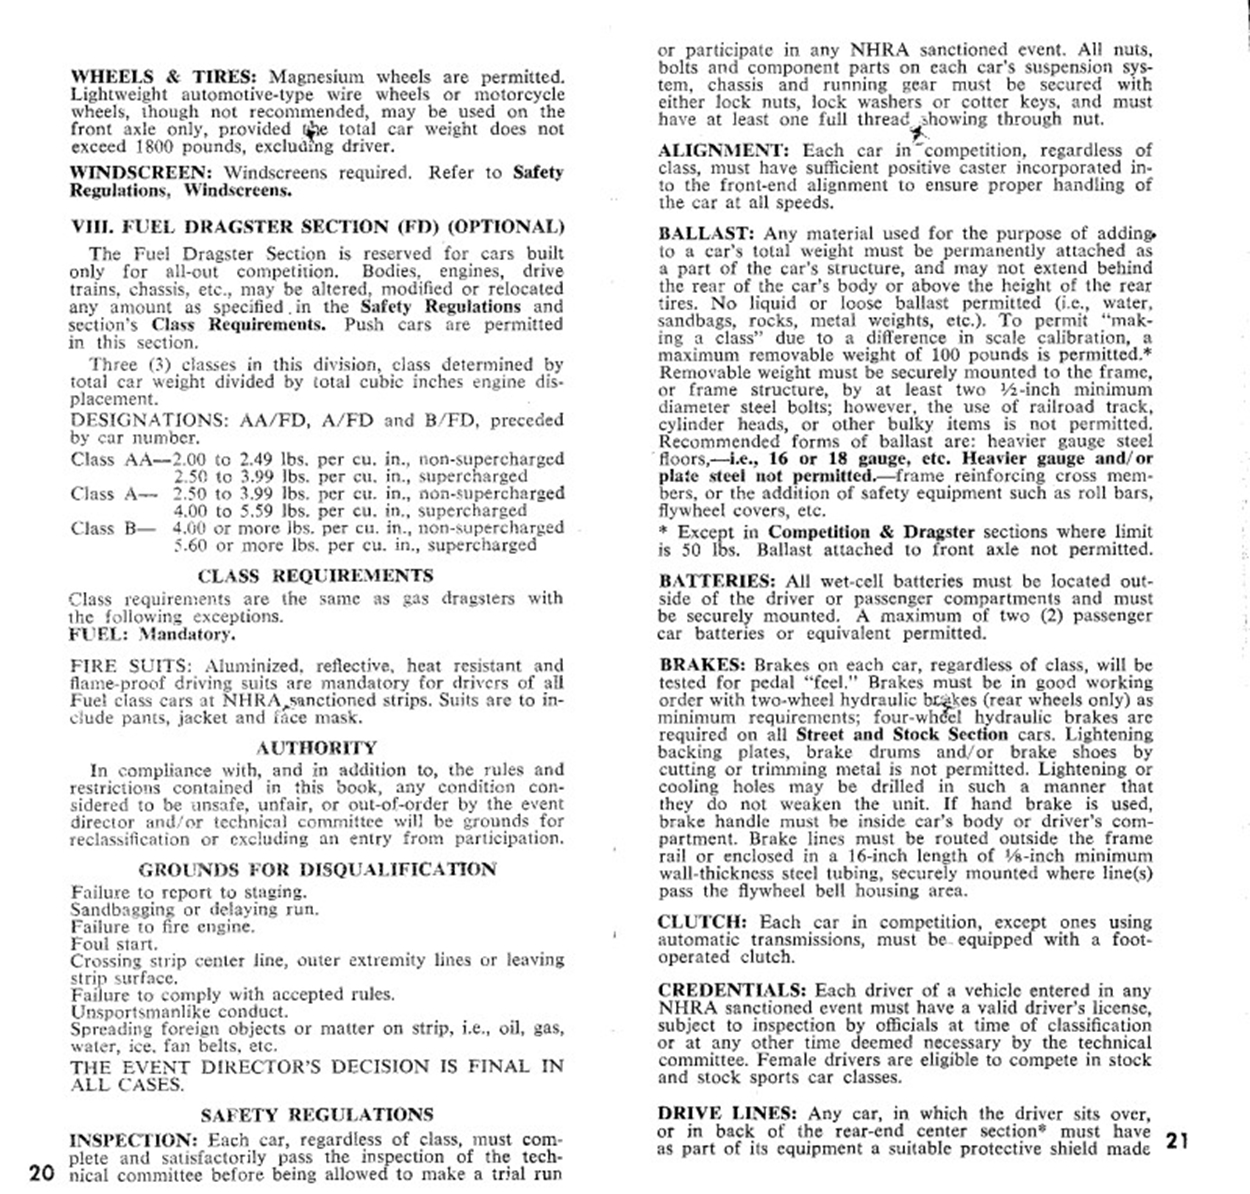 1964 Drag Rules-page12